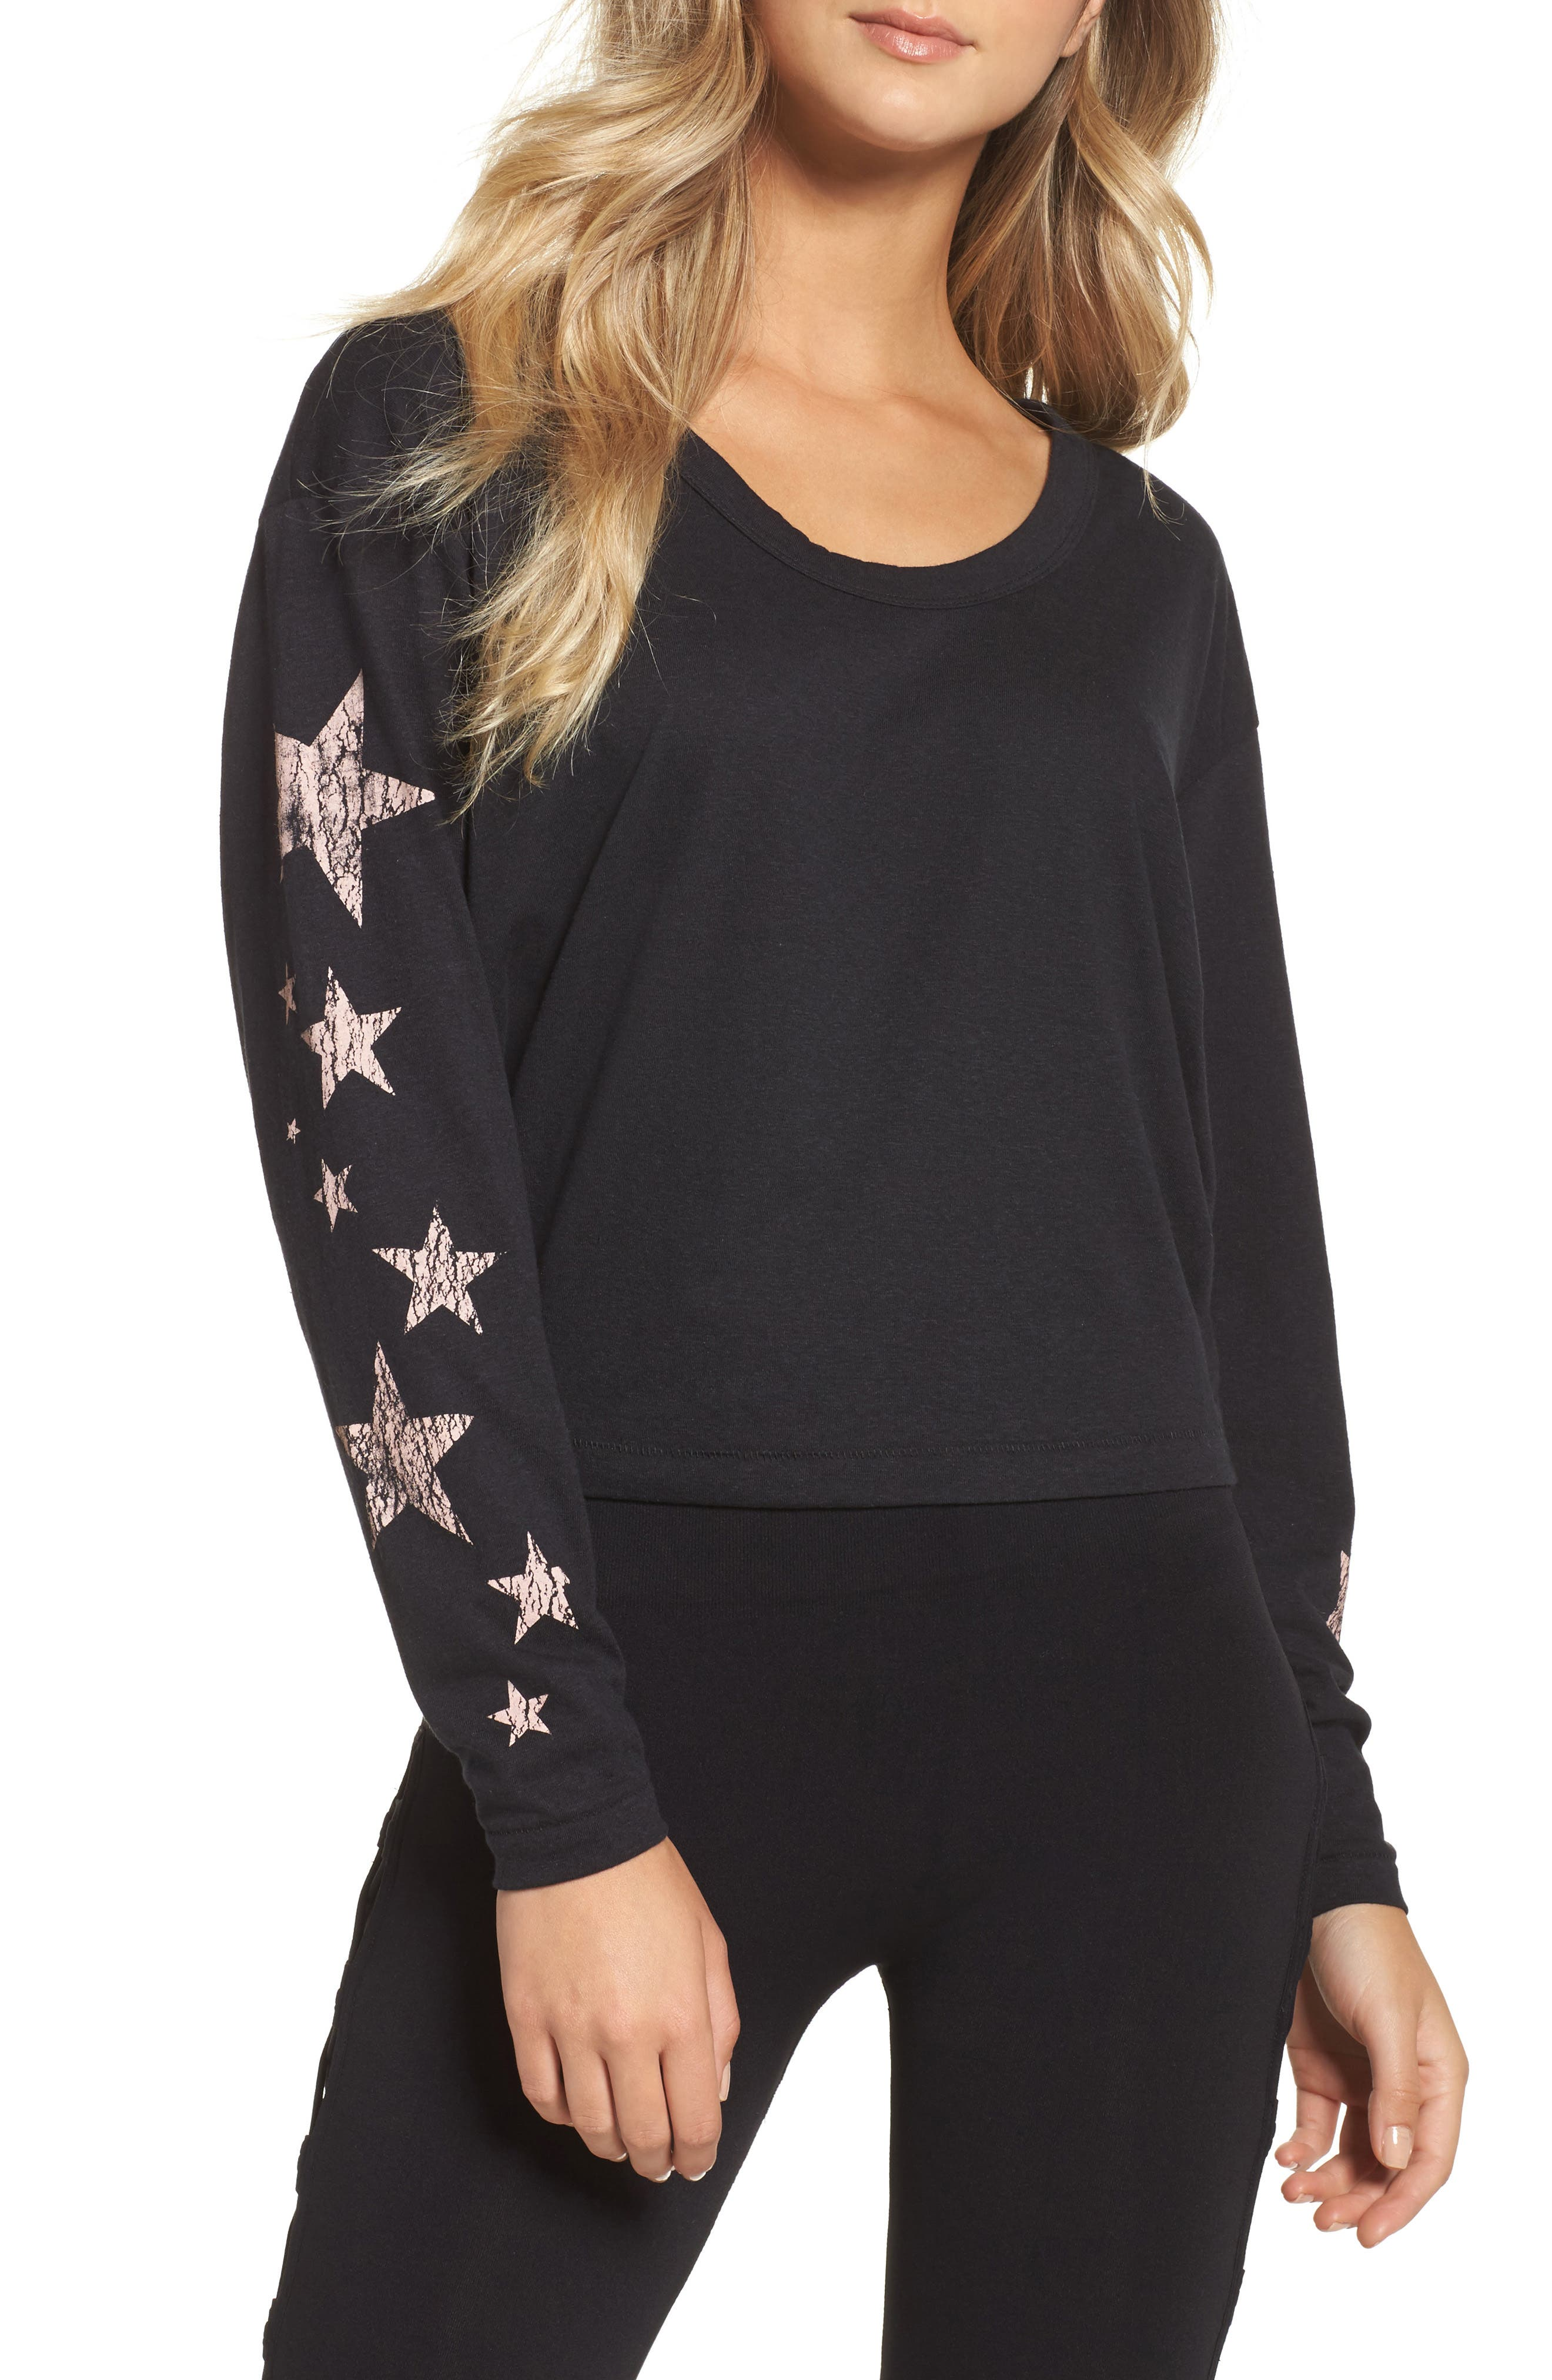 FREE PEOPLE MOVEMENT, Melrose Star Graphic Top, Main thumbnail 1, color, 001